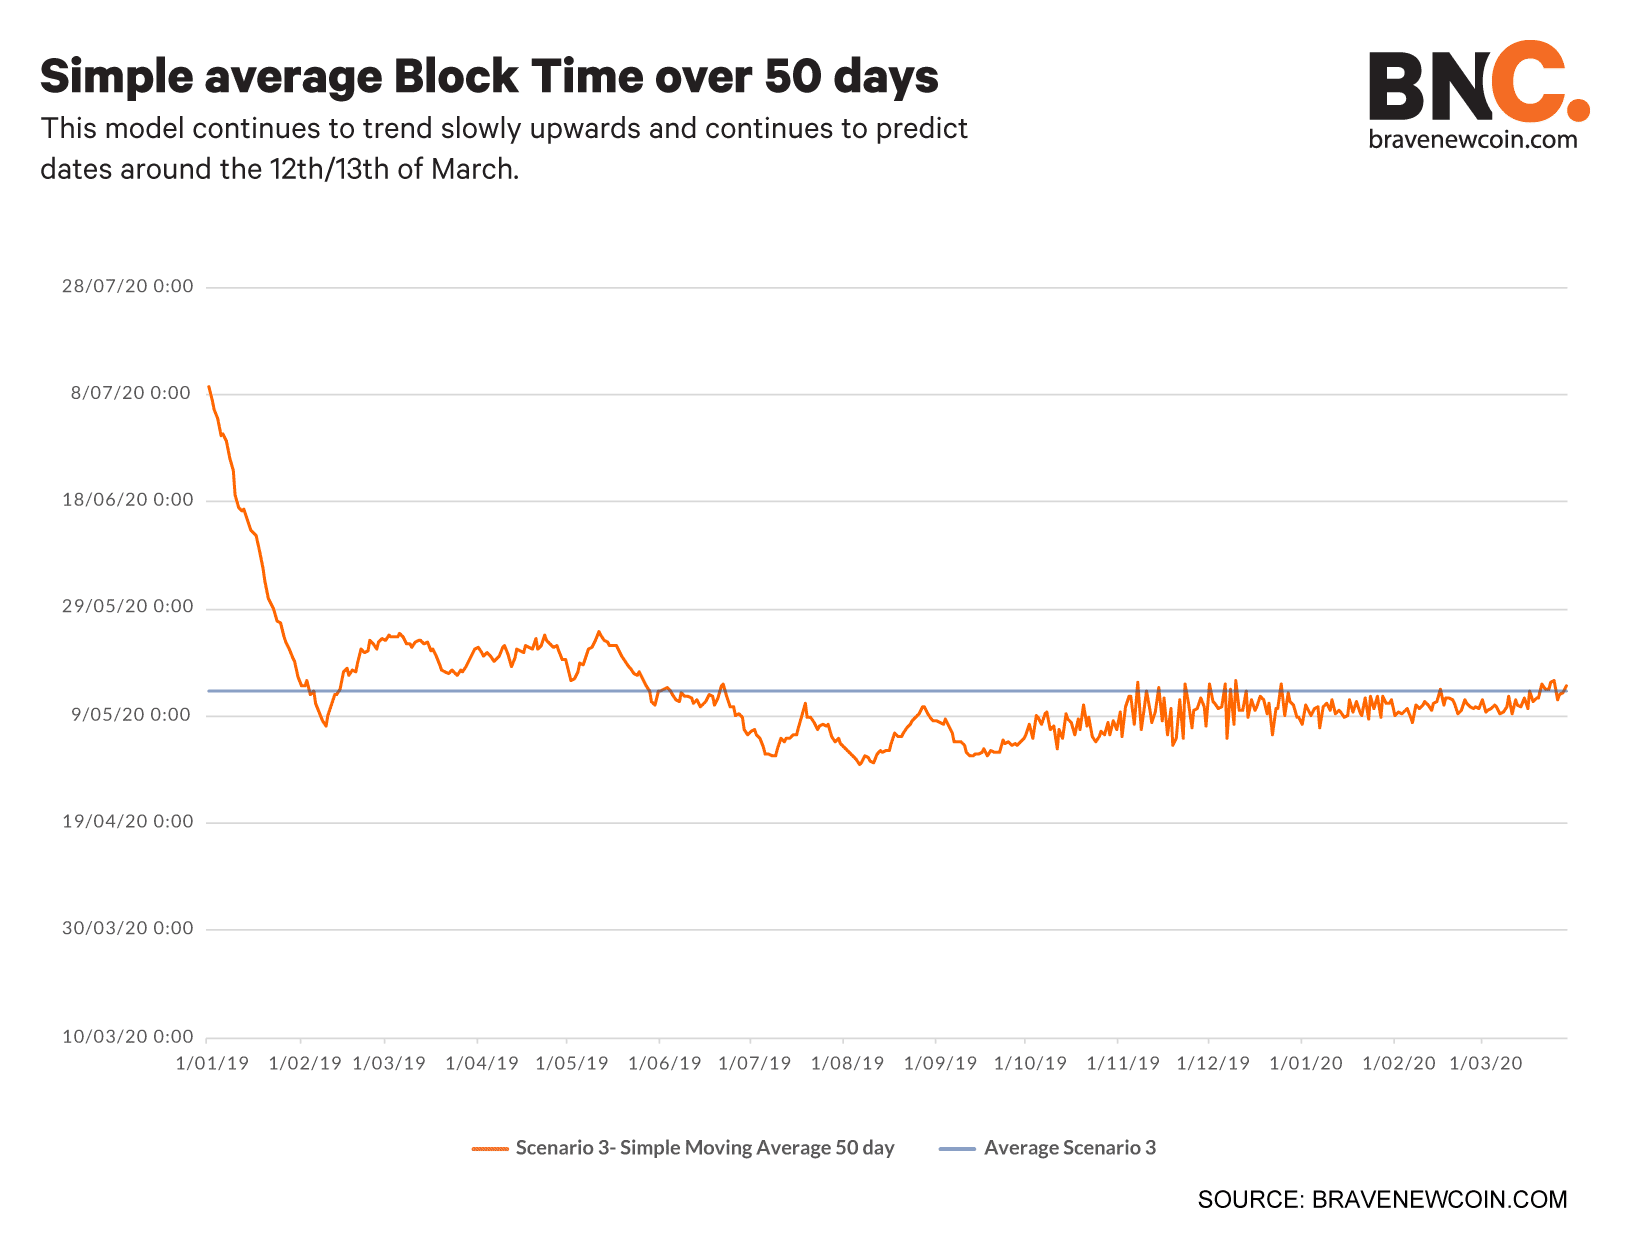 Simple-average-block-time-over-50-days (5)